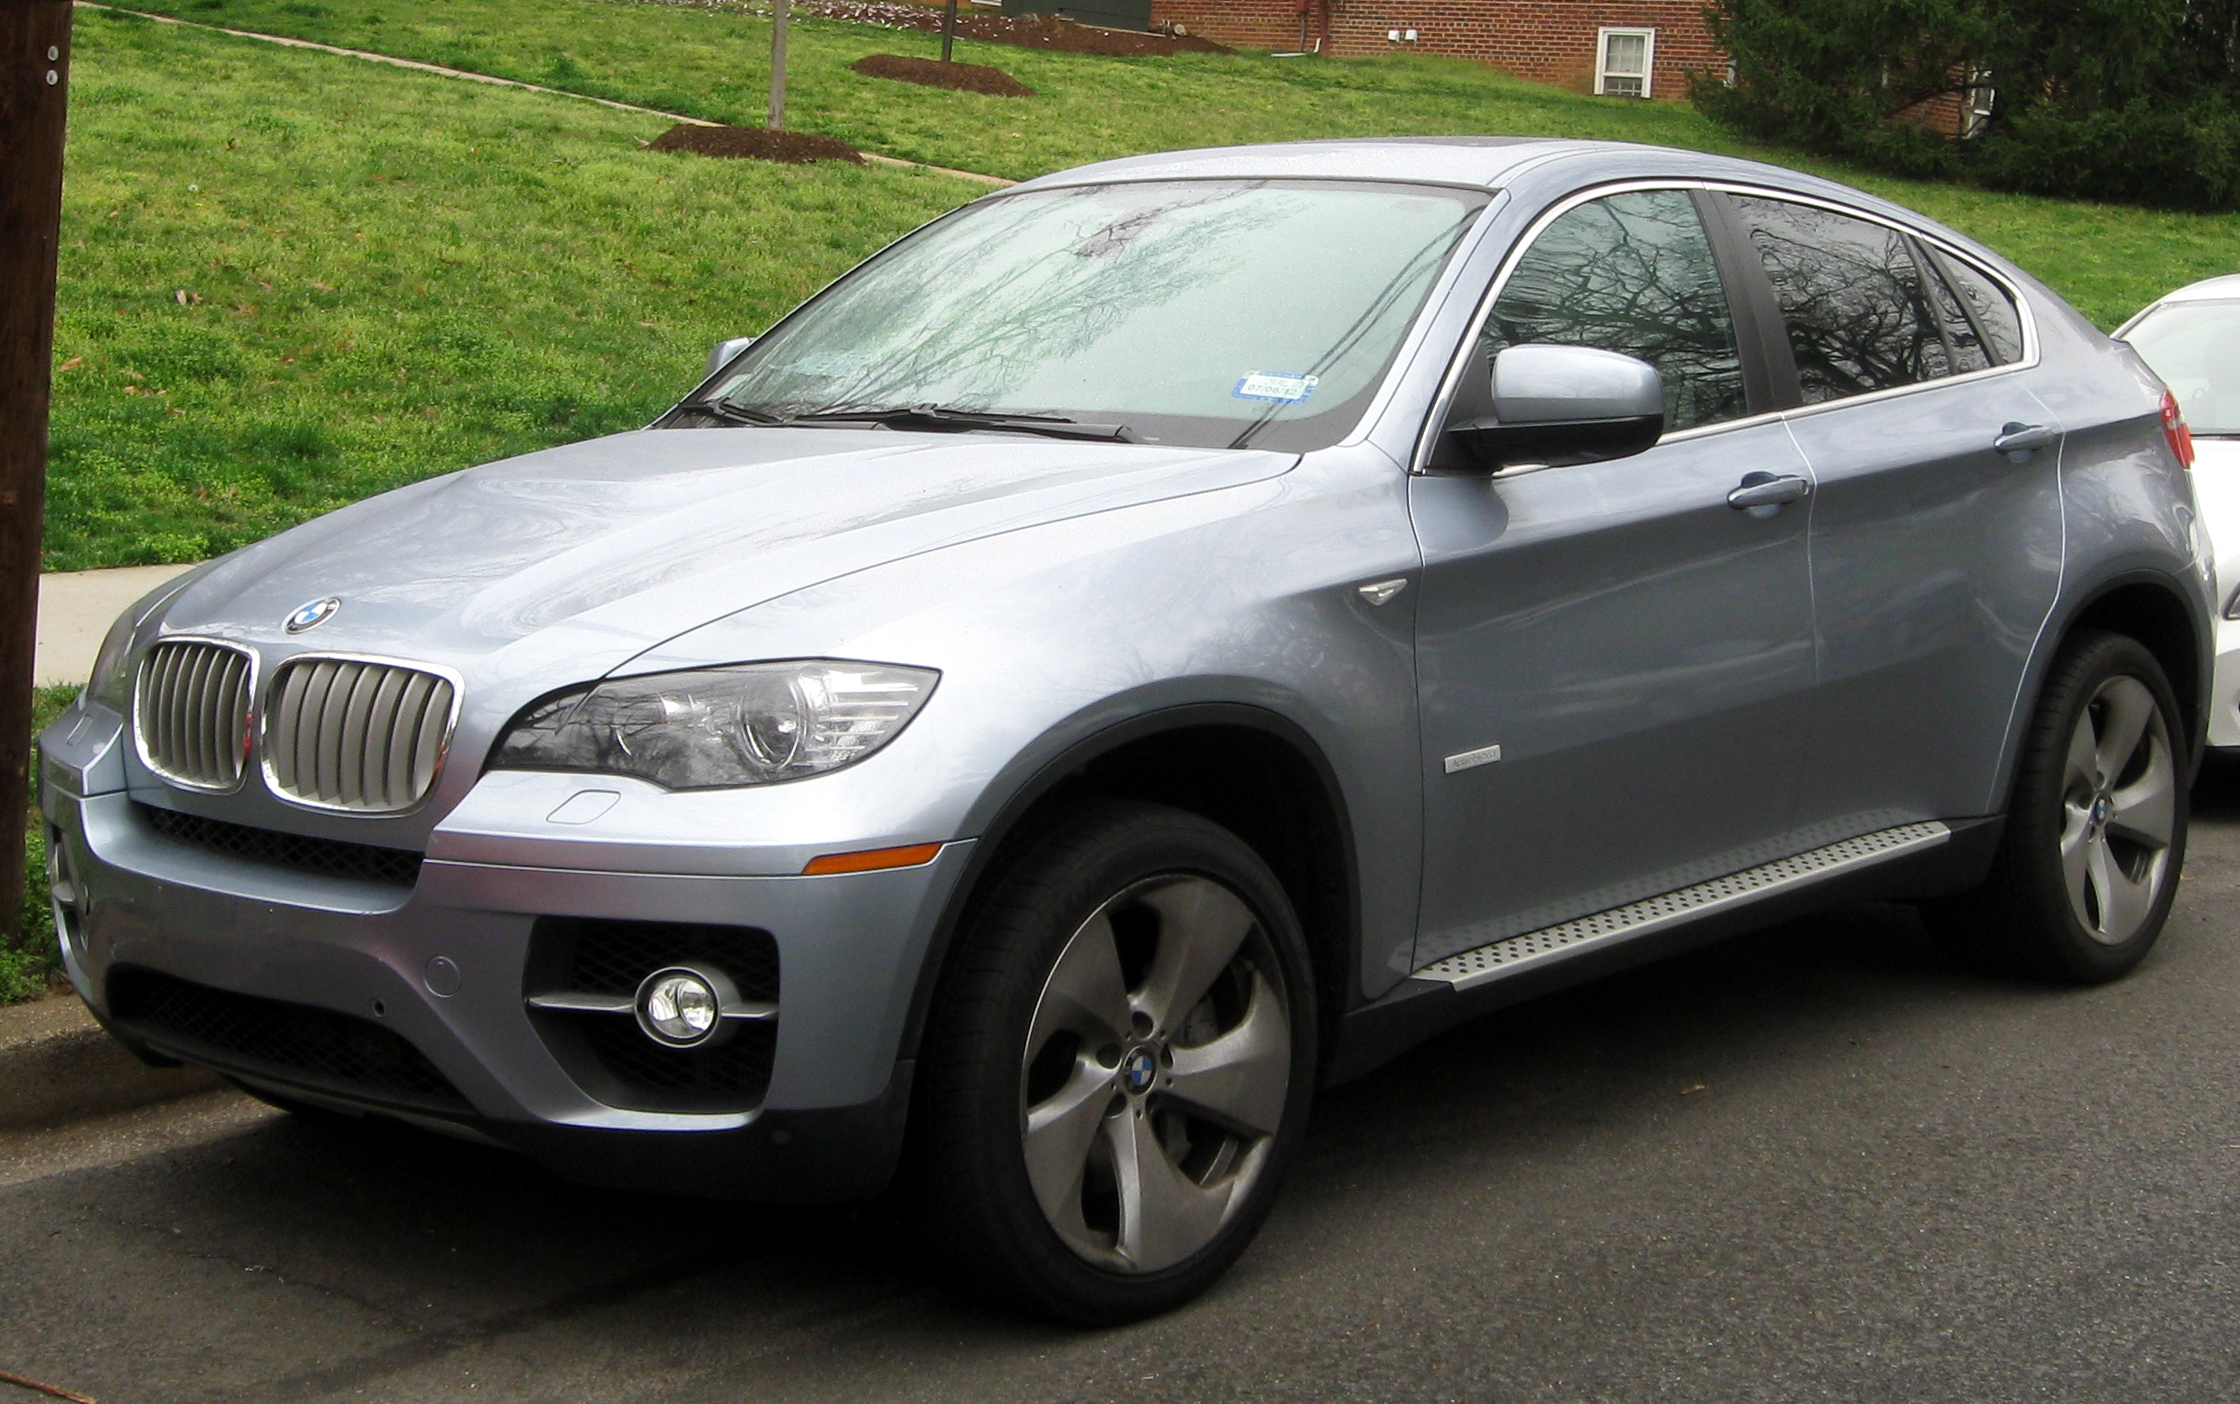 2012 Bmw X6 Information And Photos Zombiedrive 2007 Town Car Fuse Diagram 10